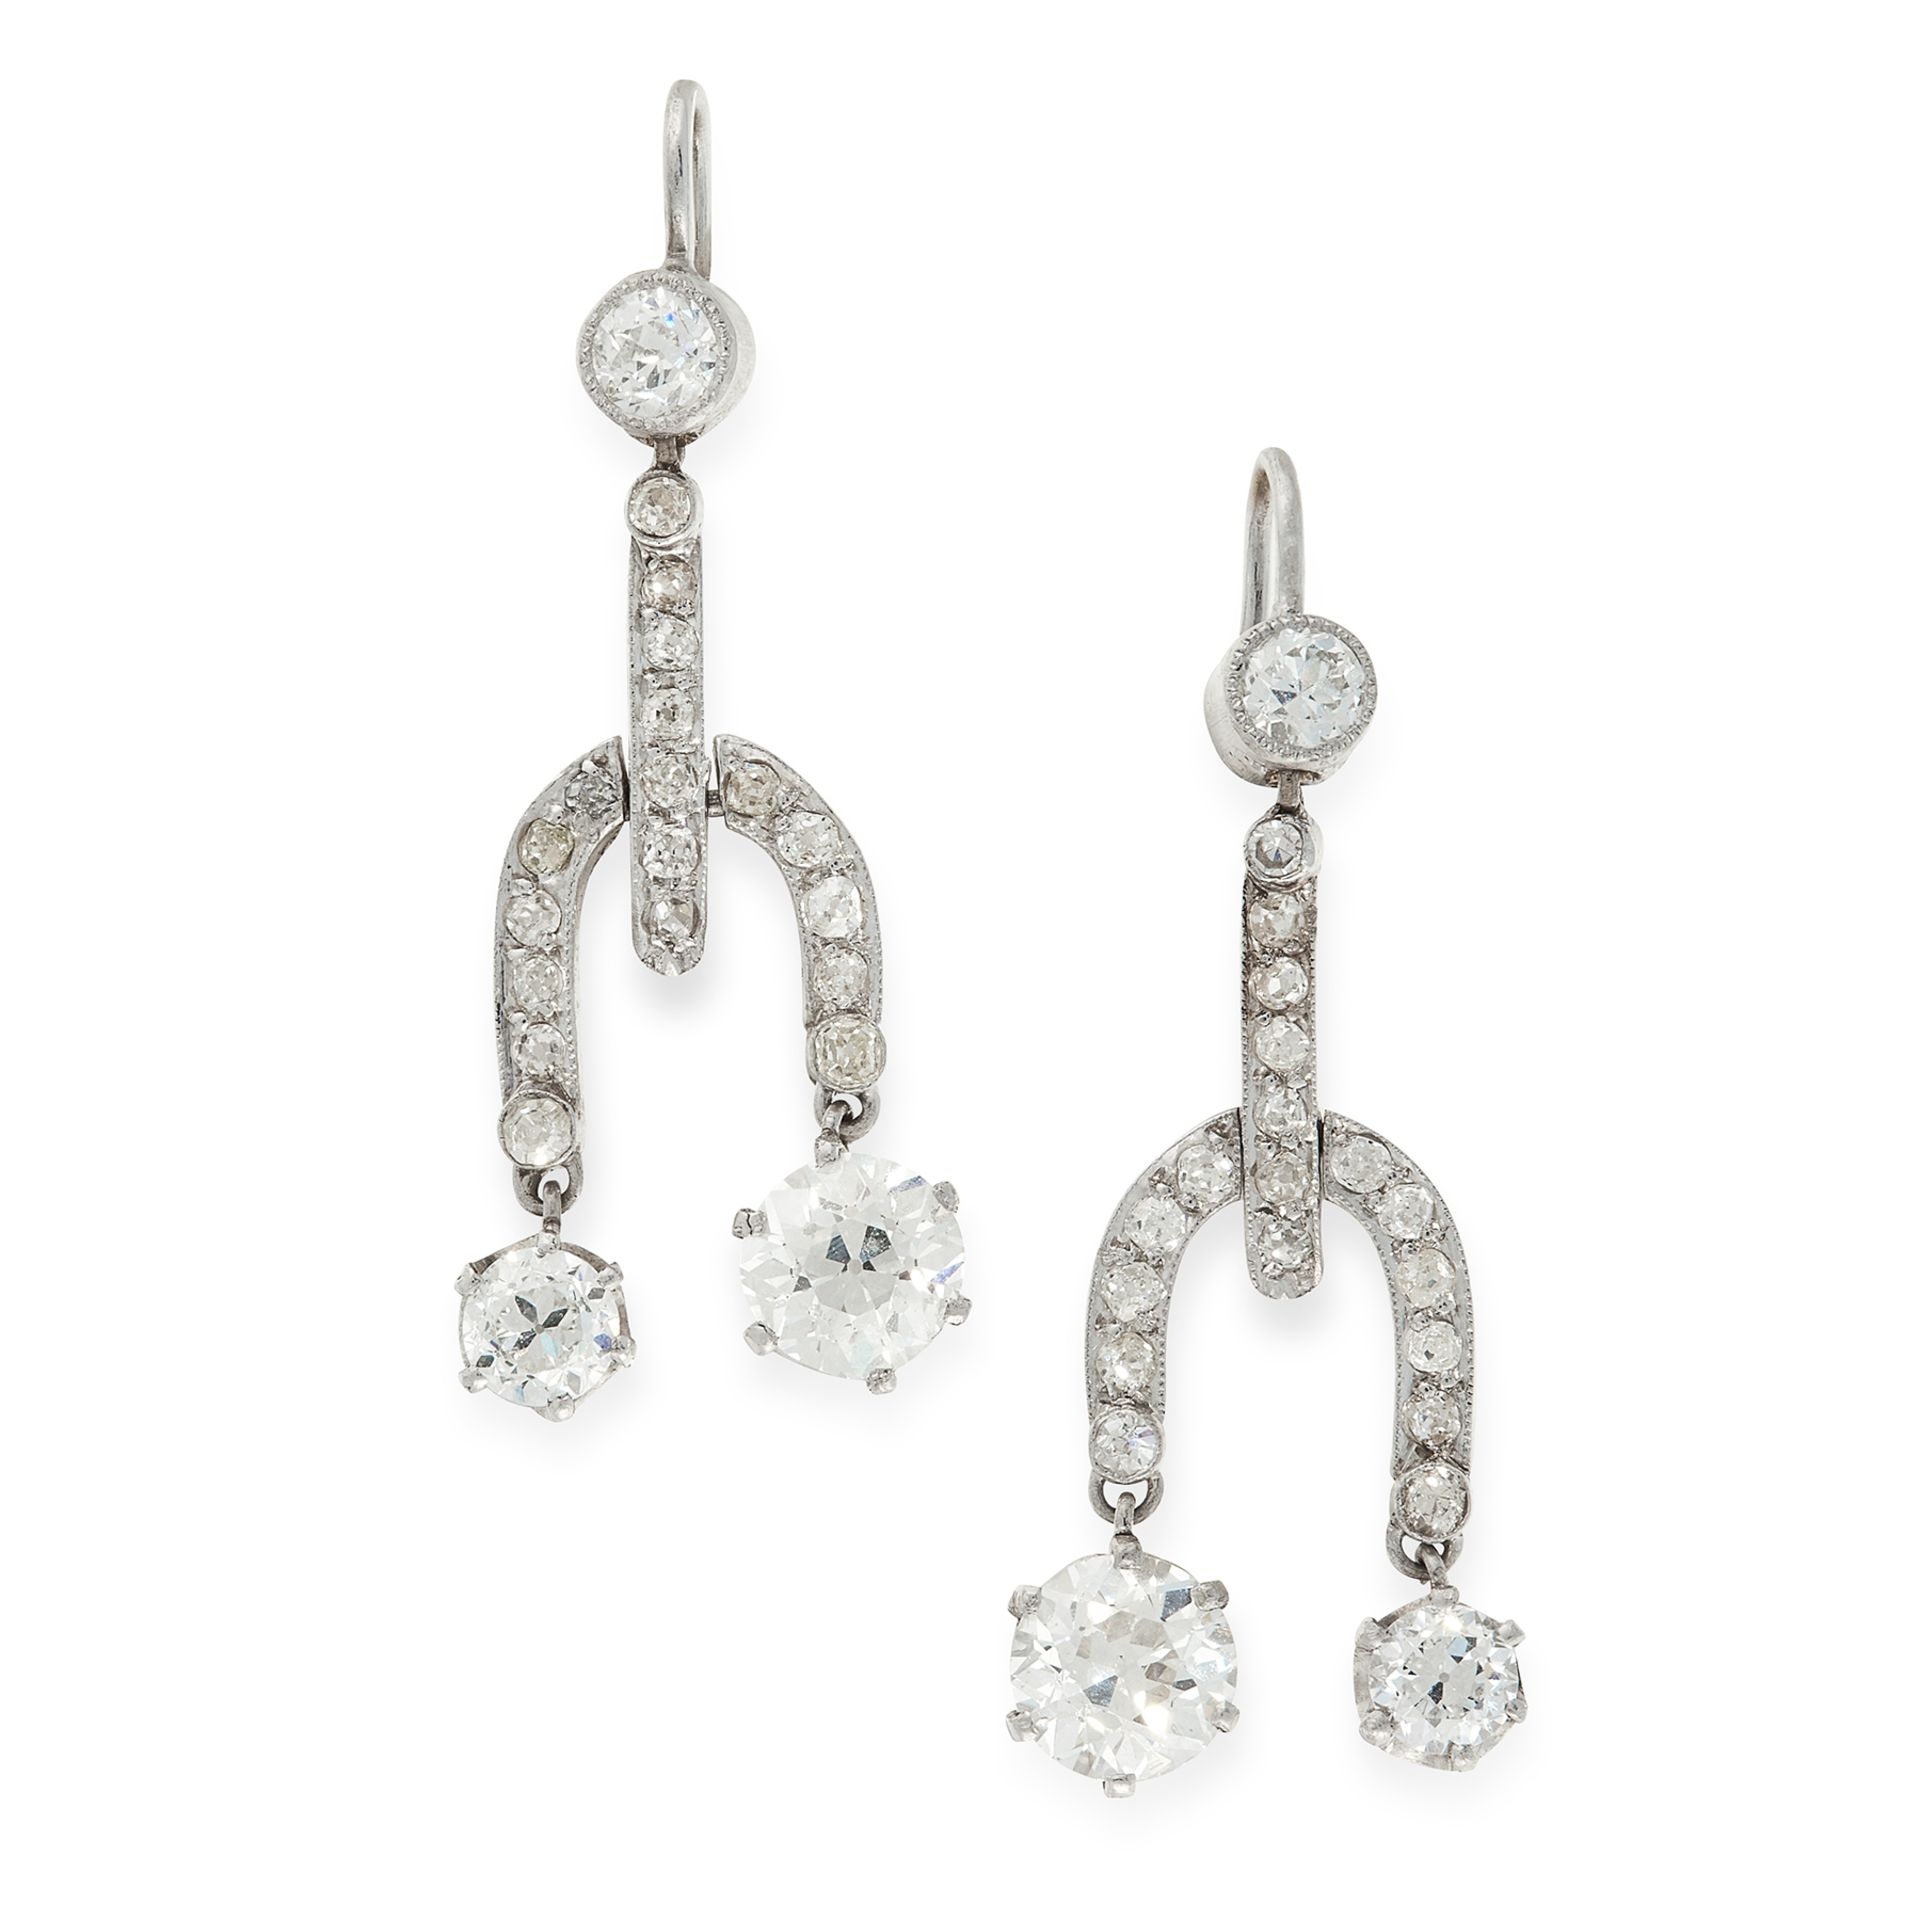 A PAIR OF DIAMOND DROP EARRINGS, EARLY 20TH CENTURY each set with a principal old cut diamond of 0.